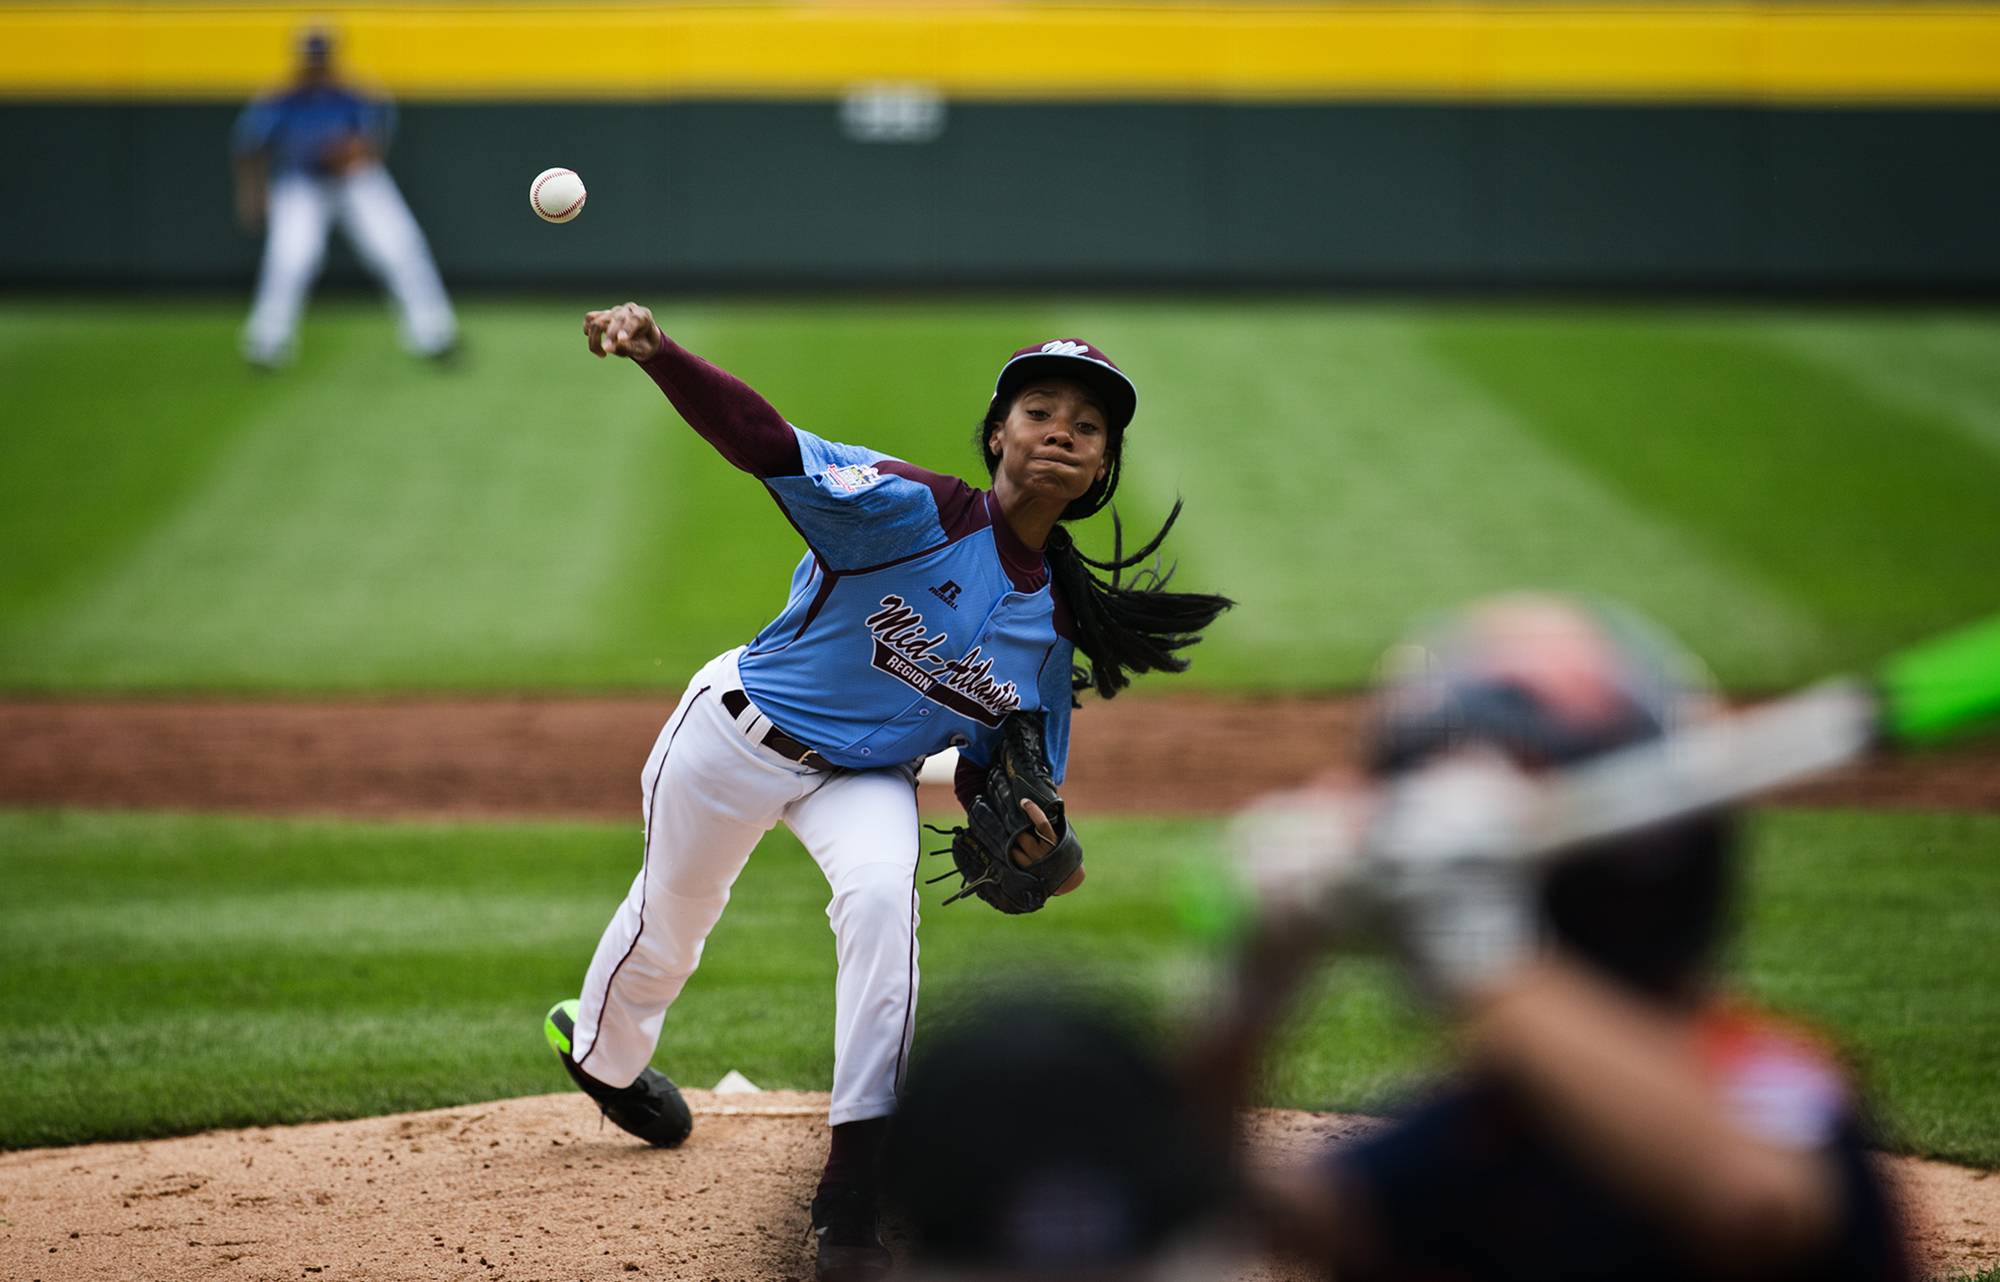 Philadelphia's Mo'ne Davis delivers a pitch against Nashville during her team's 4-0 win Friday at the Little League World Series  in South Williamsport, Pa.